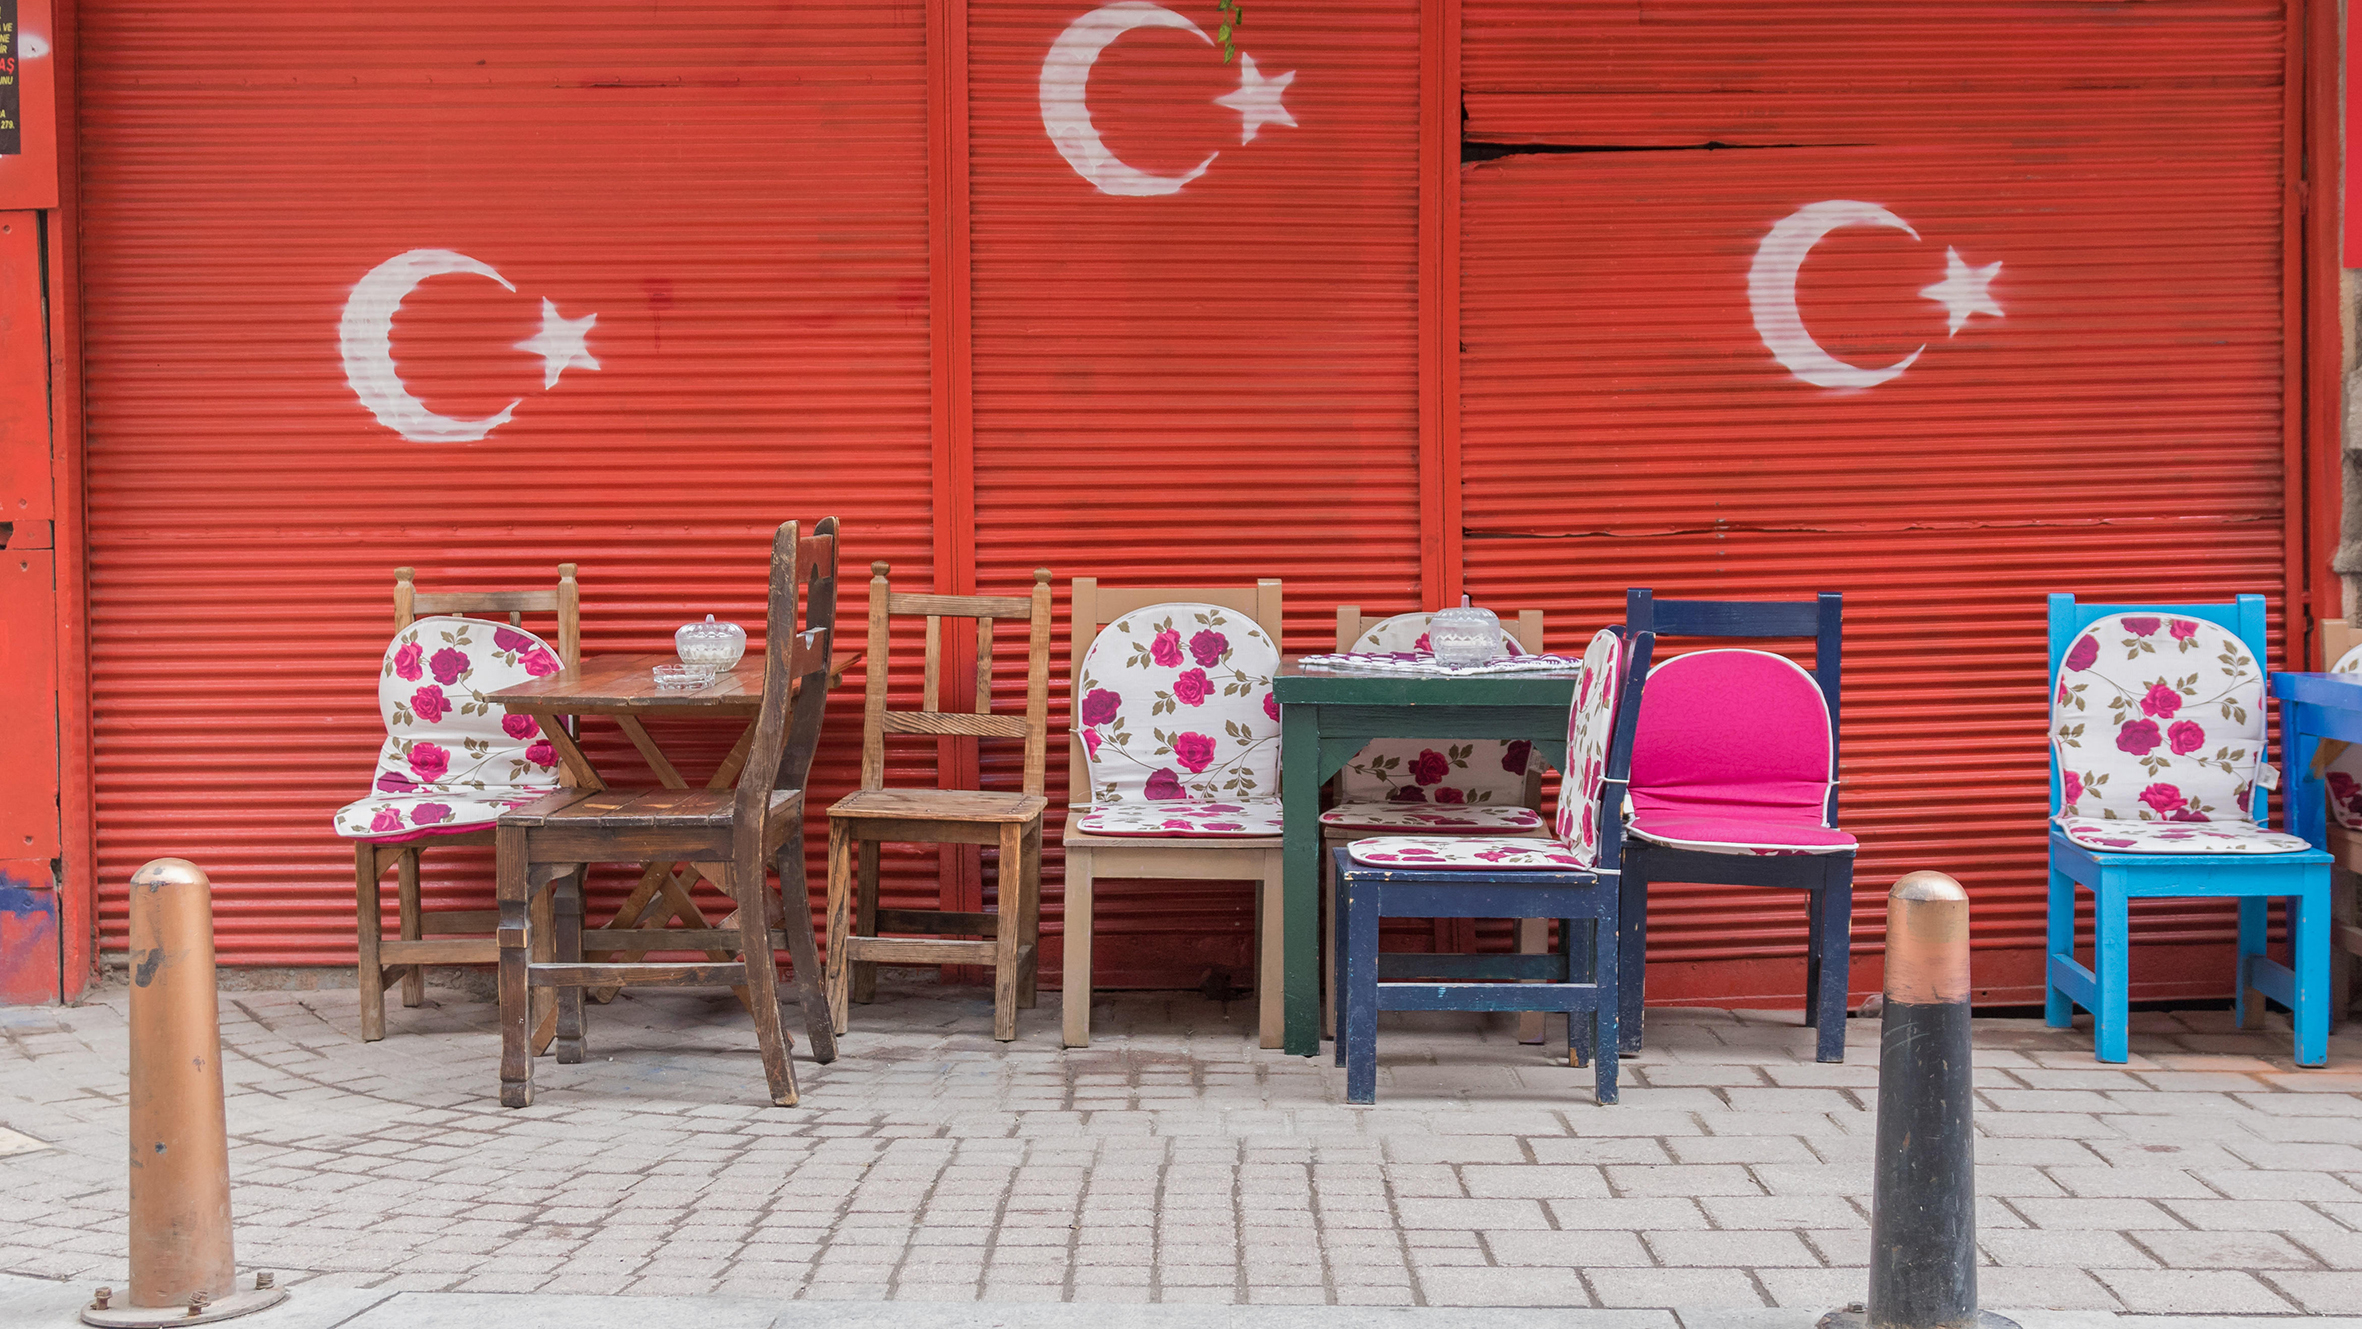 The districts of Fener and Balat are typical, colourful areas of Istanbul